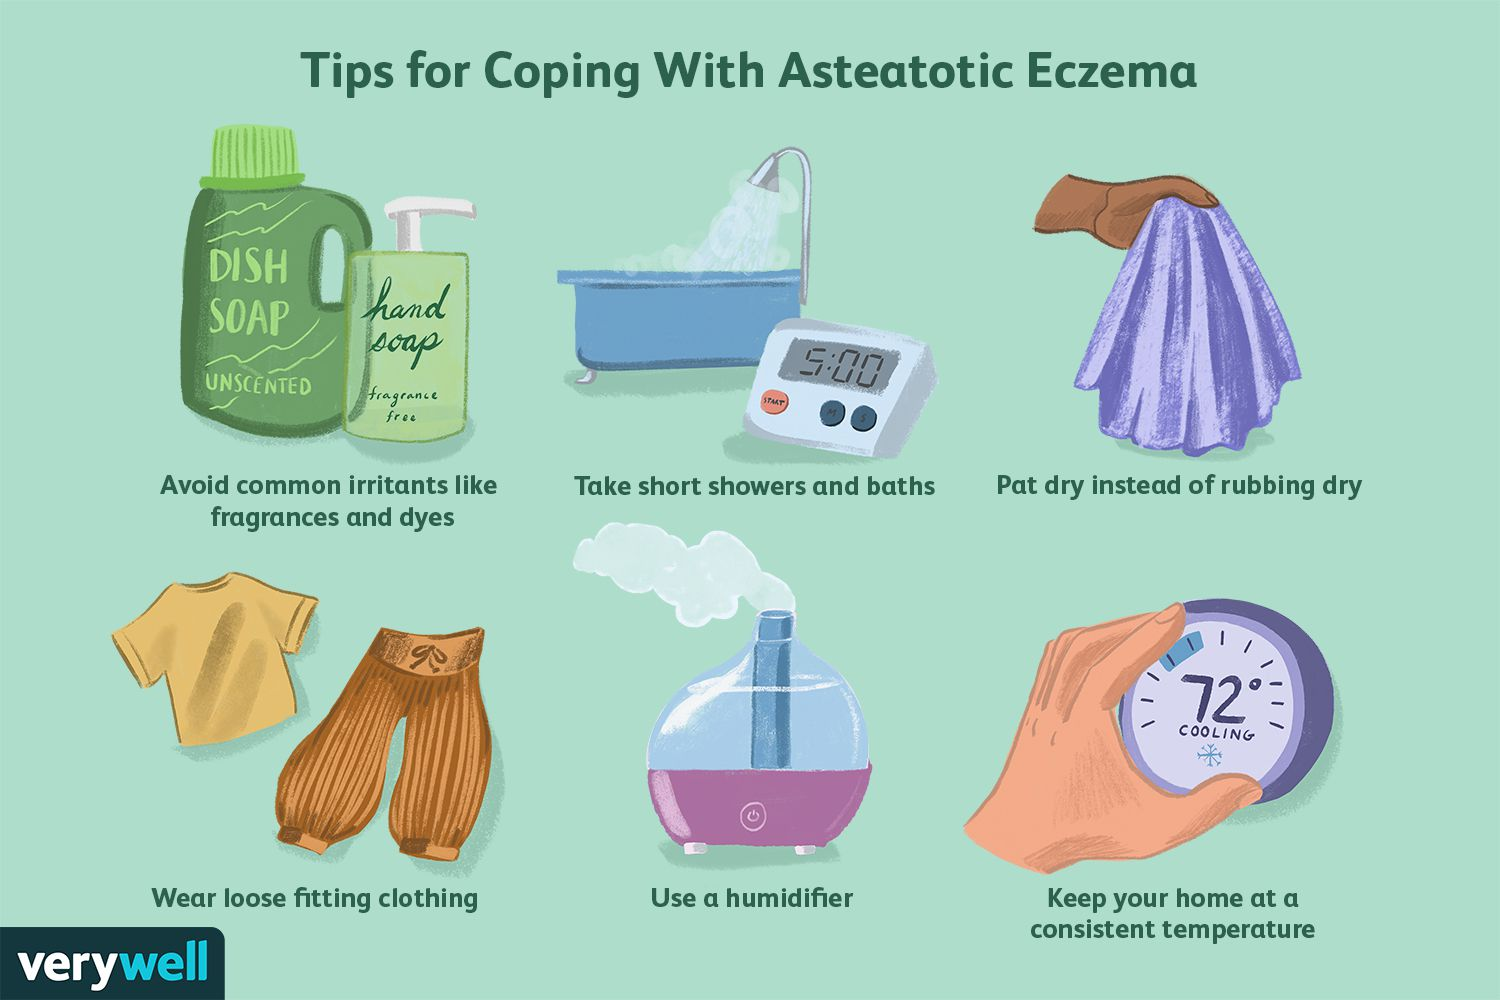 Tips for Coping With Asteatotic Eczema